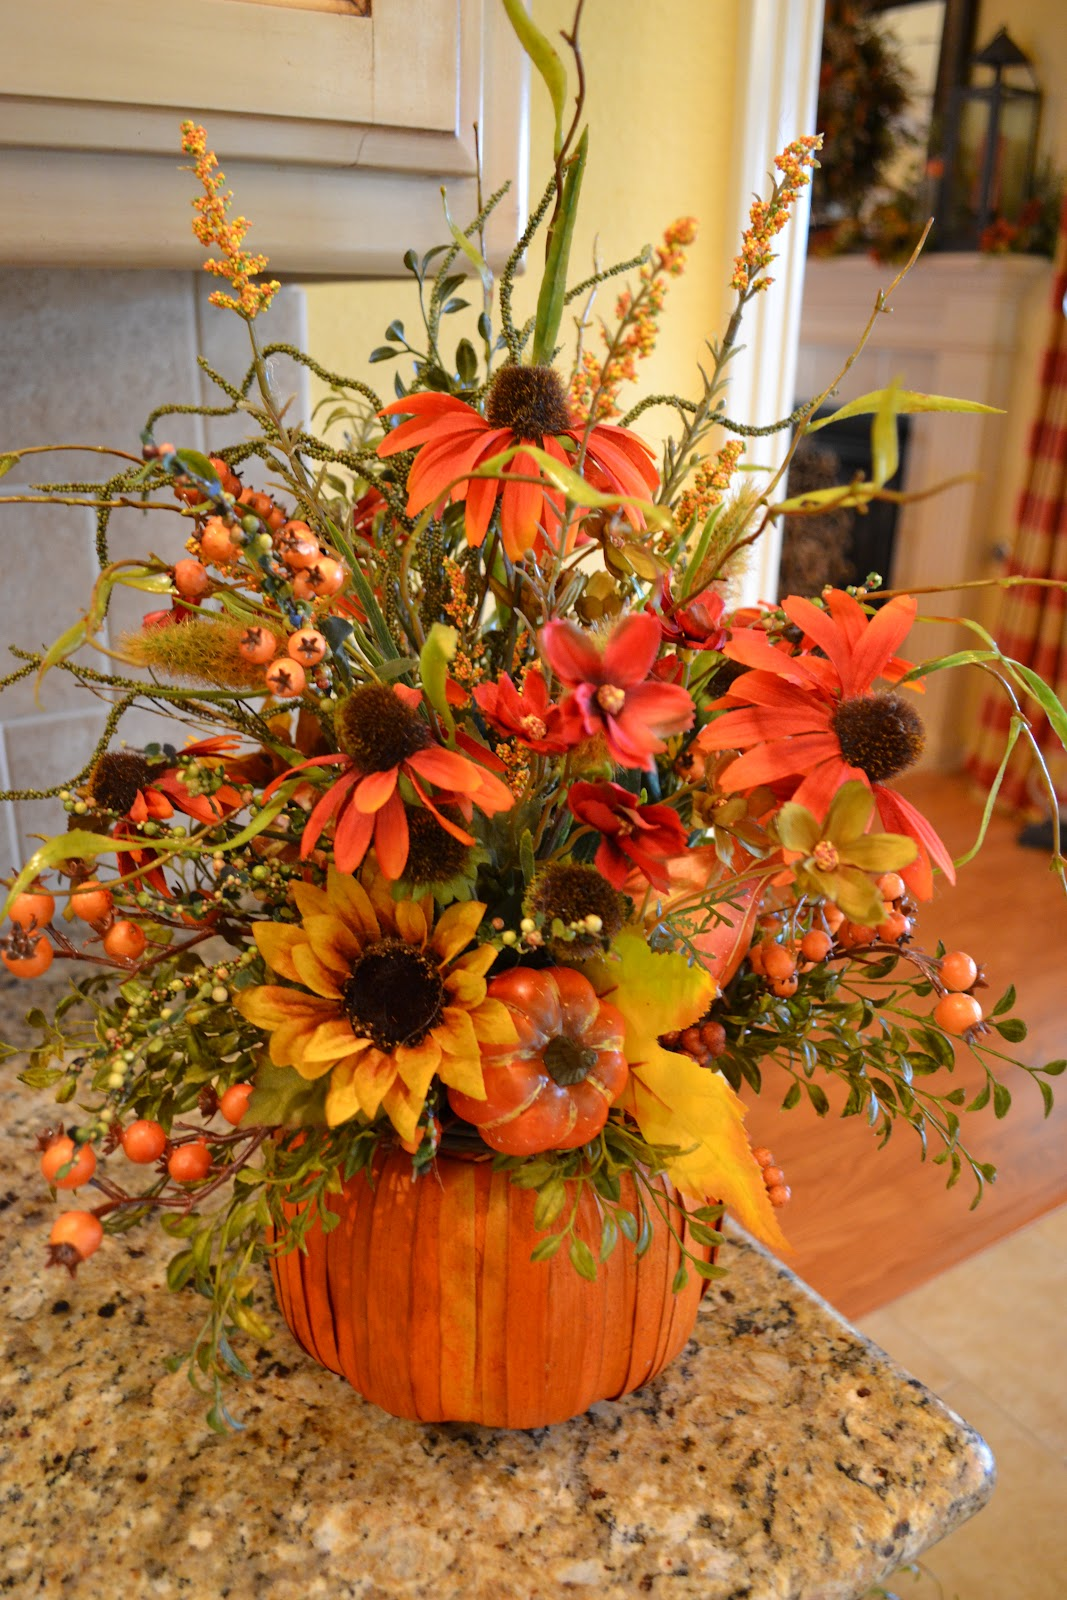 Fall Decor To Make Kristen 39s Creations Share Your Creations Party 55